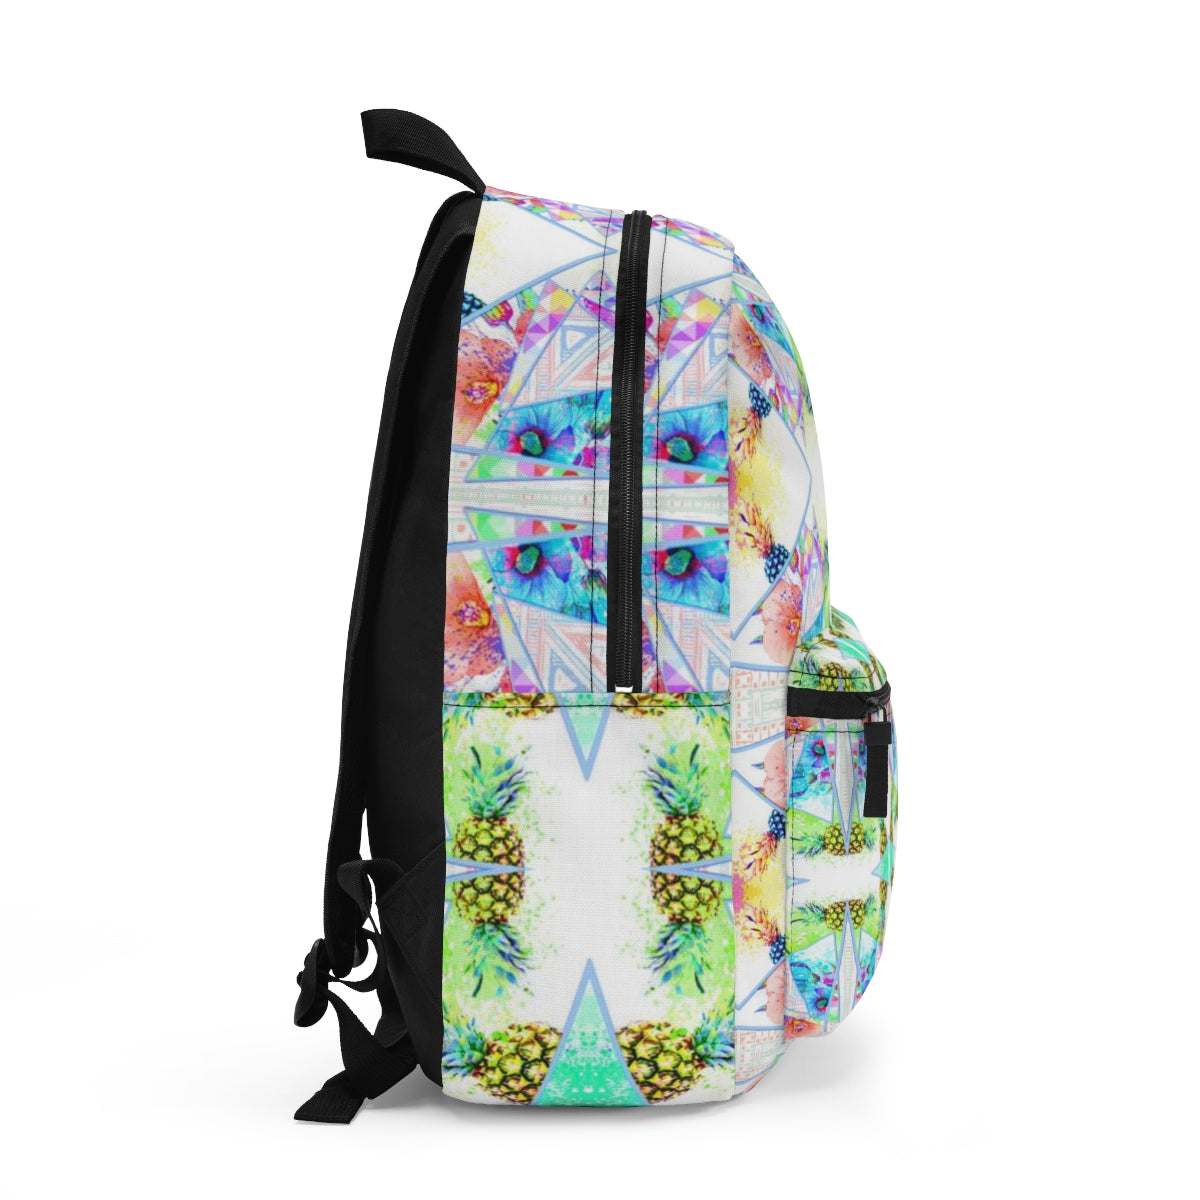 Fiji Islands #0004 (Backpack)